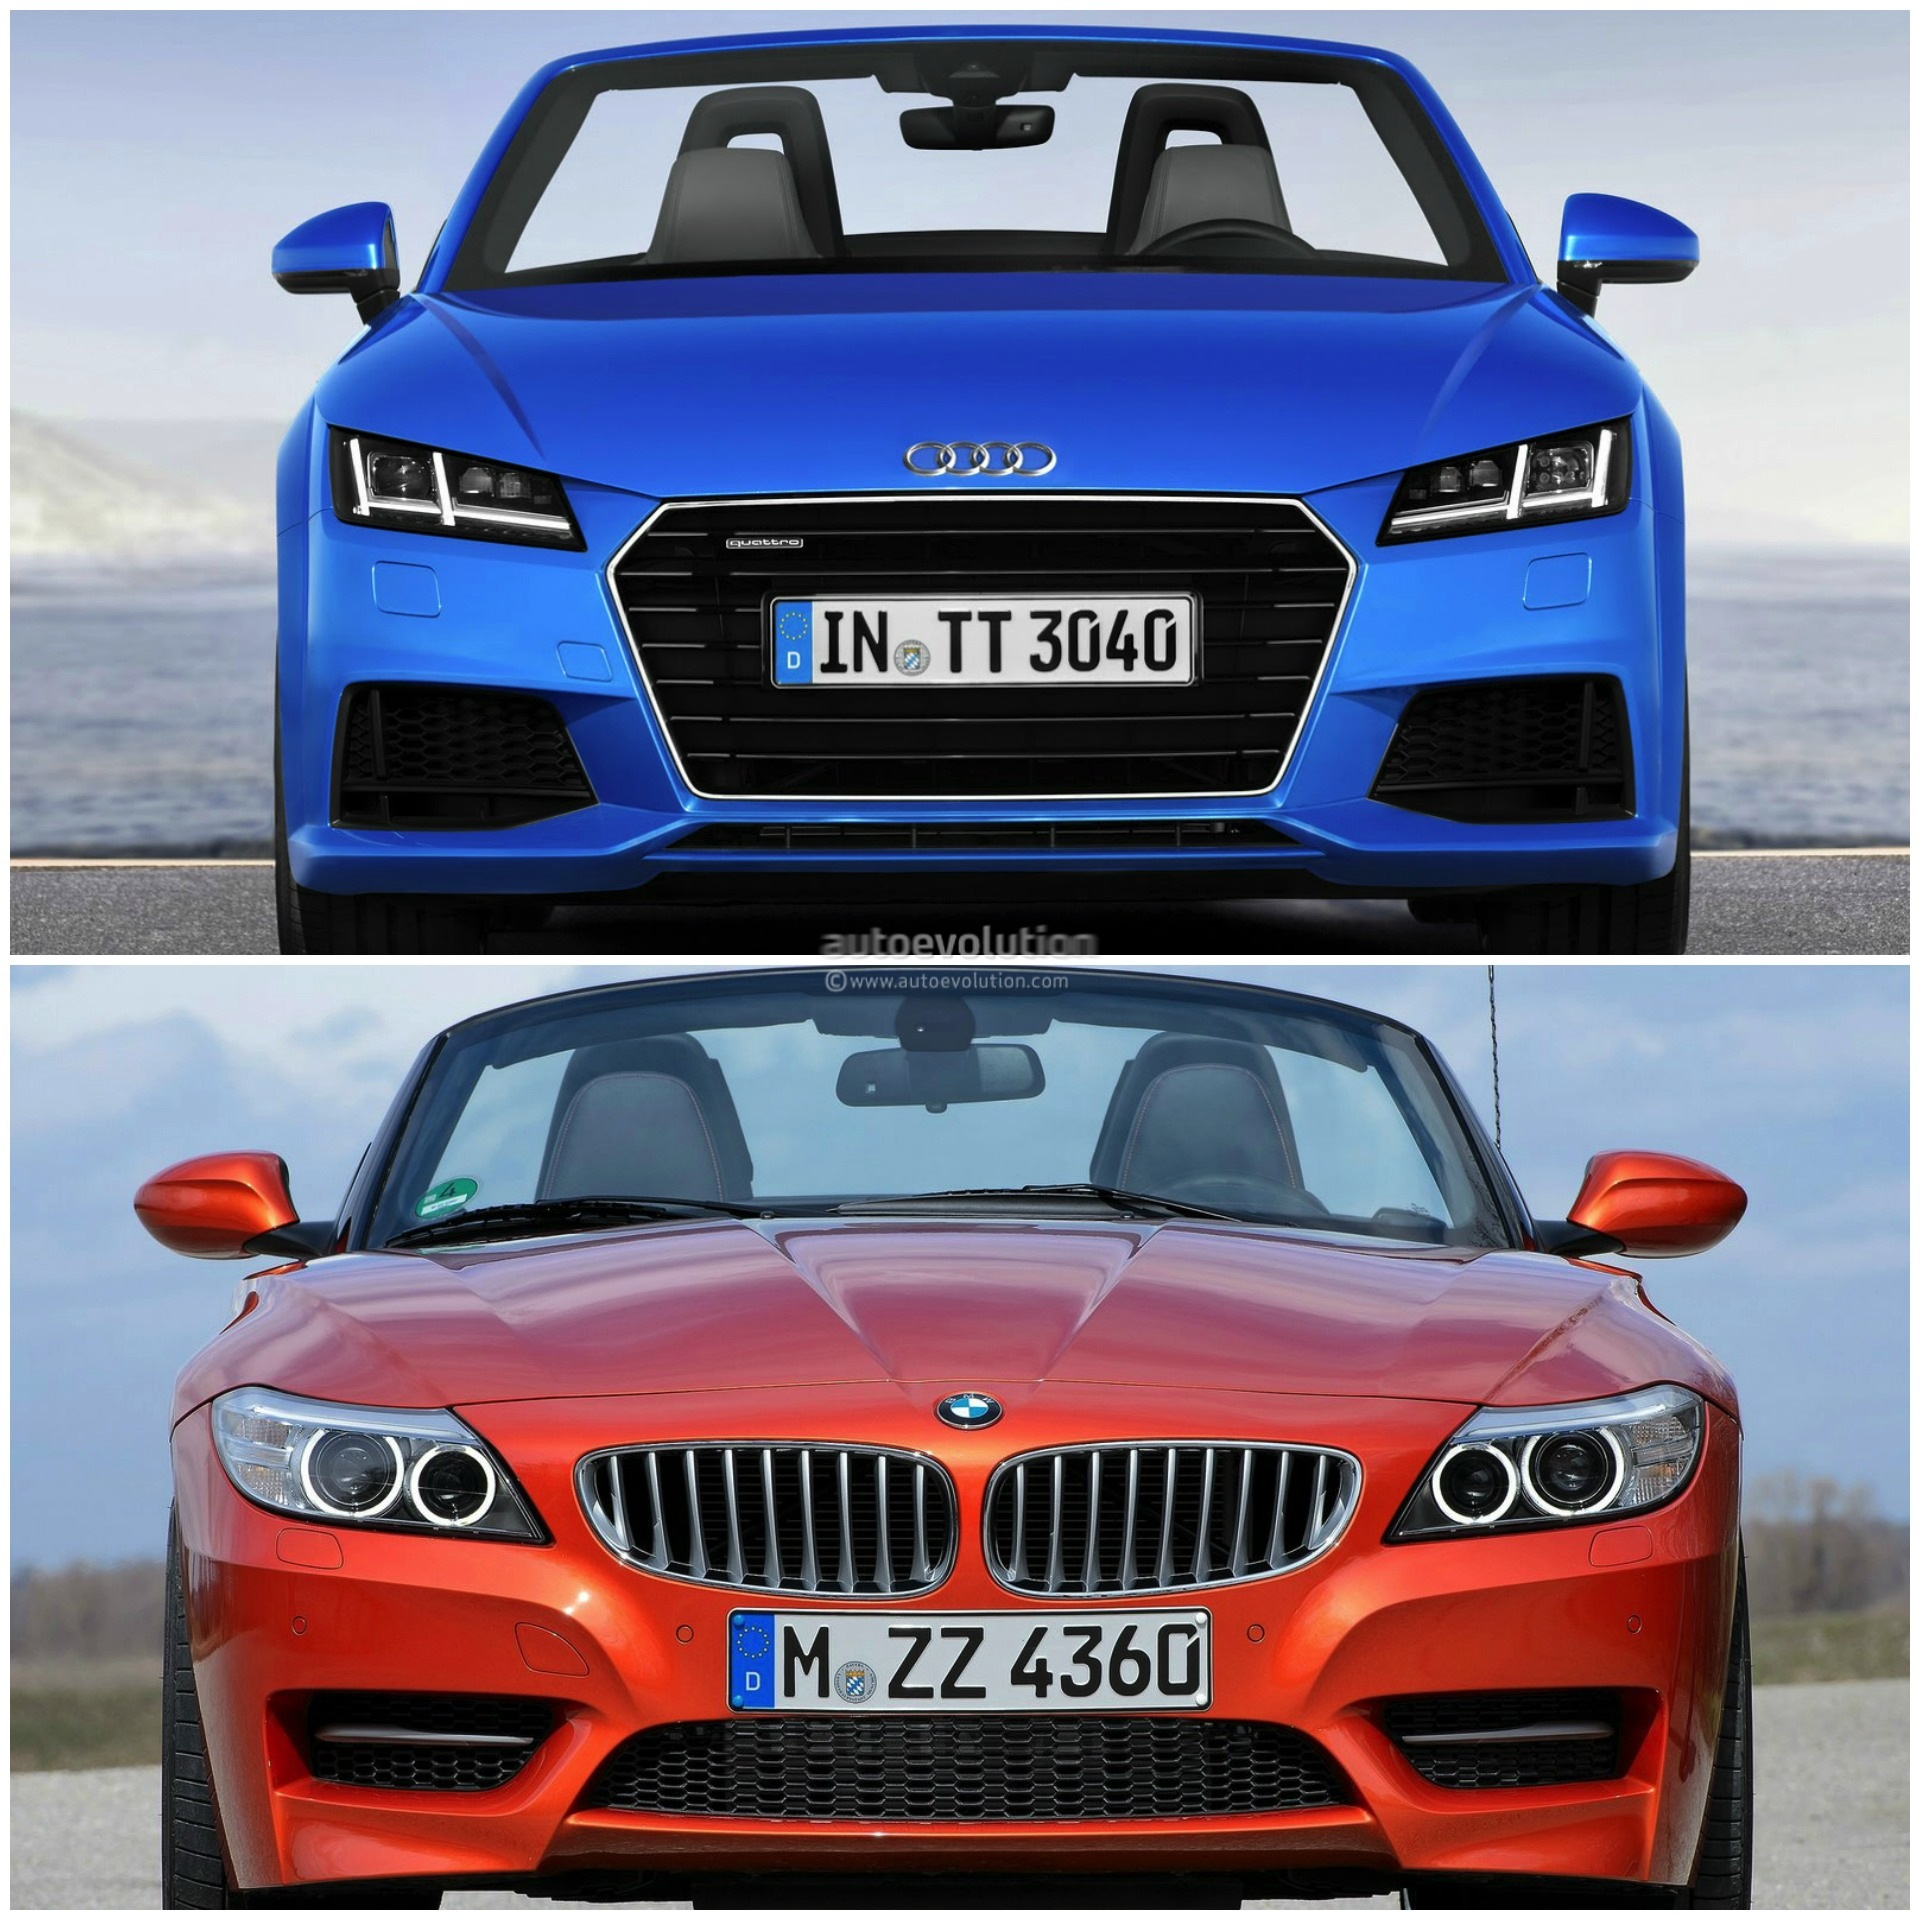 Bmw Z4 Convertible: 2015 Audi TT Roadster Vs 2014 BMW Z4: Roadster Comparison